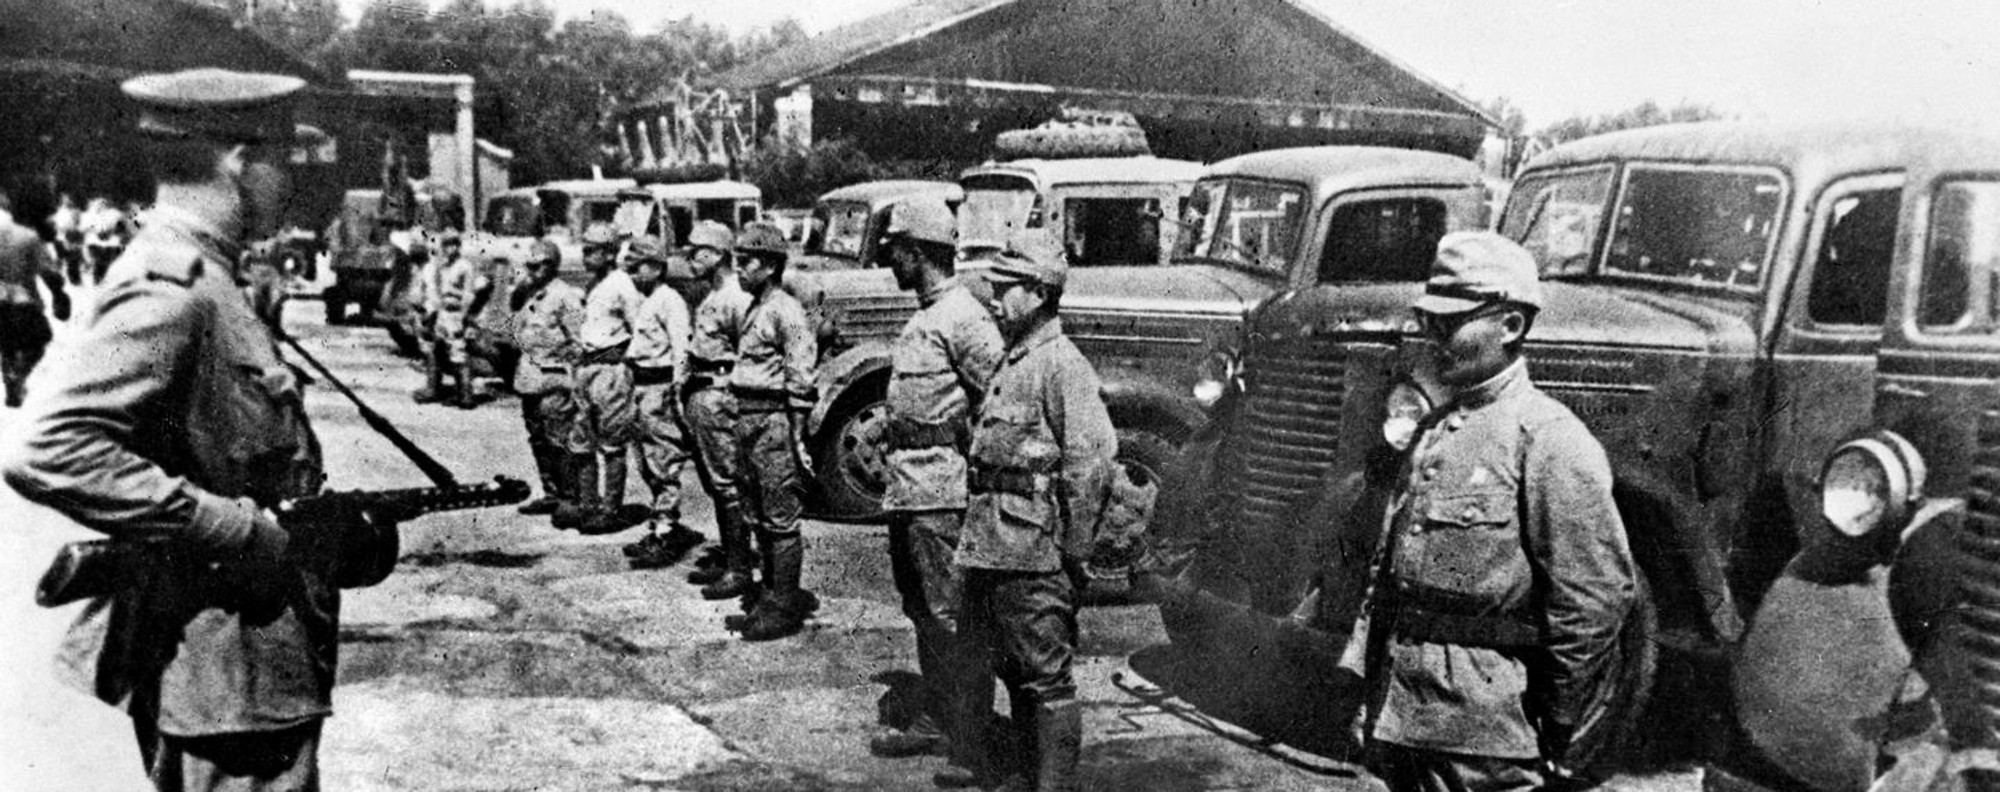 Soviet troops disarm Japanese invaders in China in 1945. Photo: Xinhua